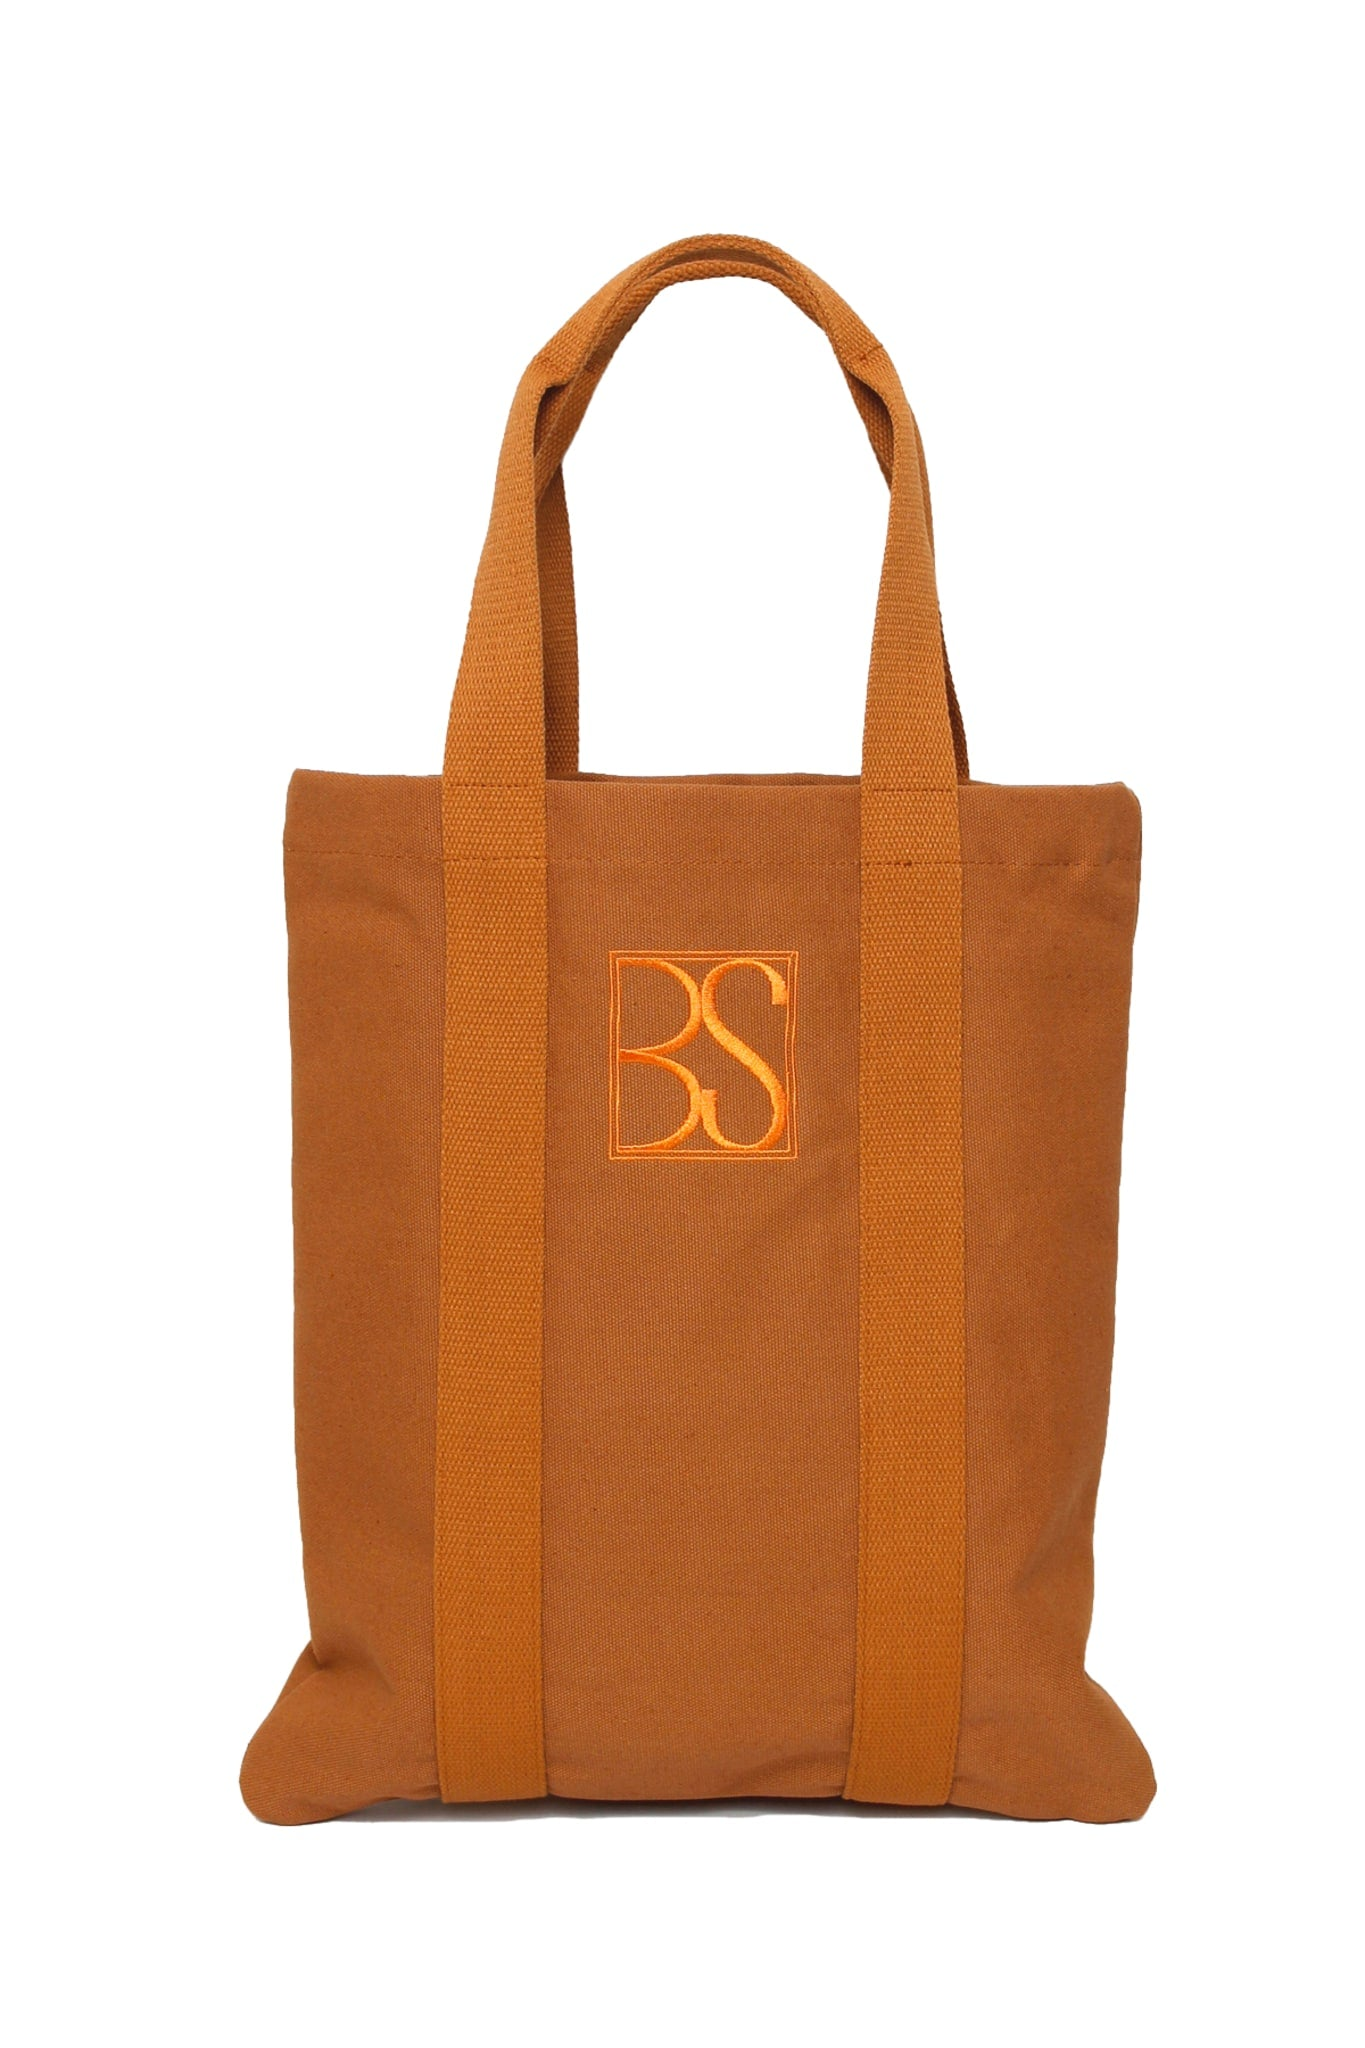 Tote bag - Orange logo